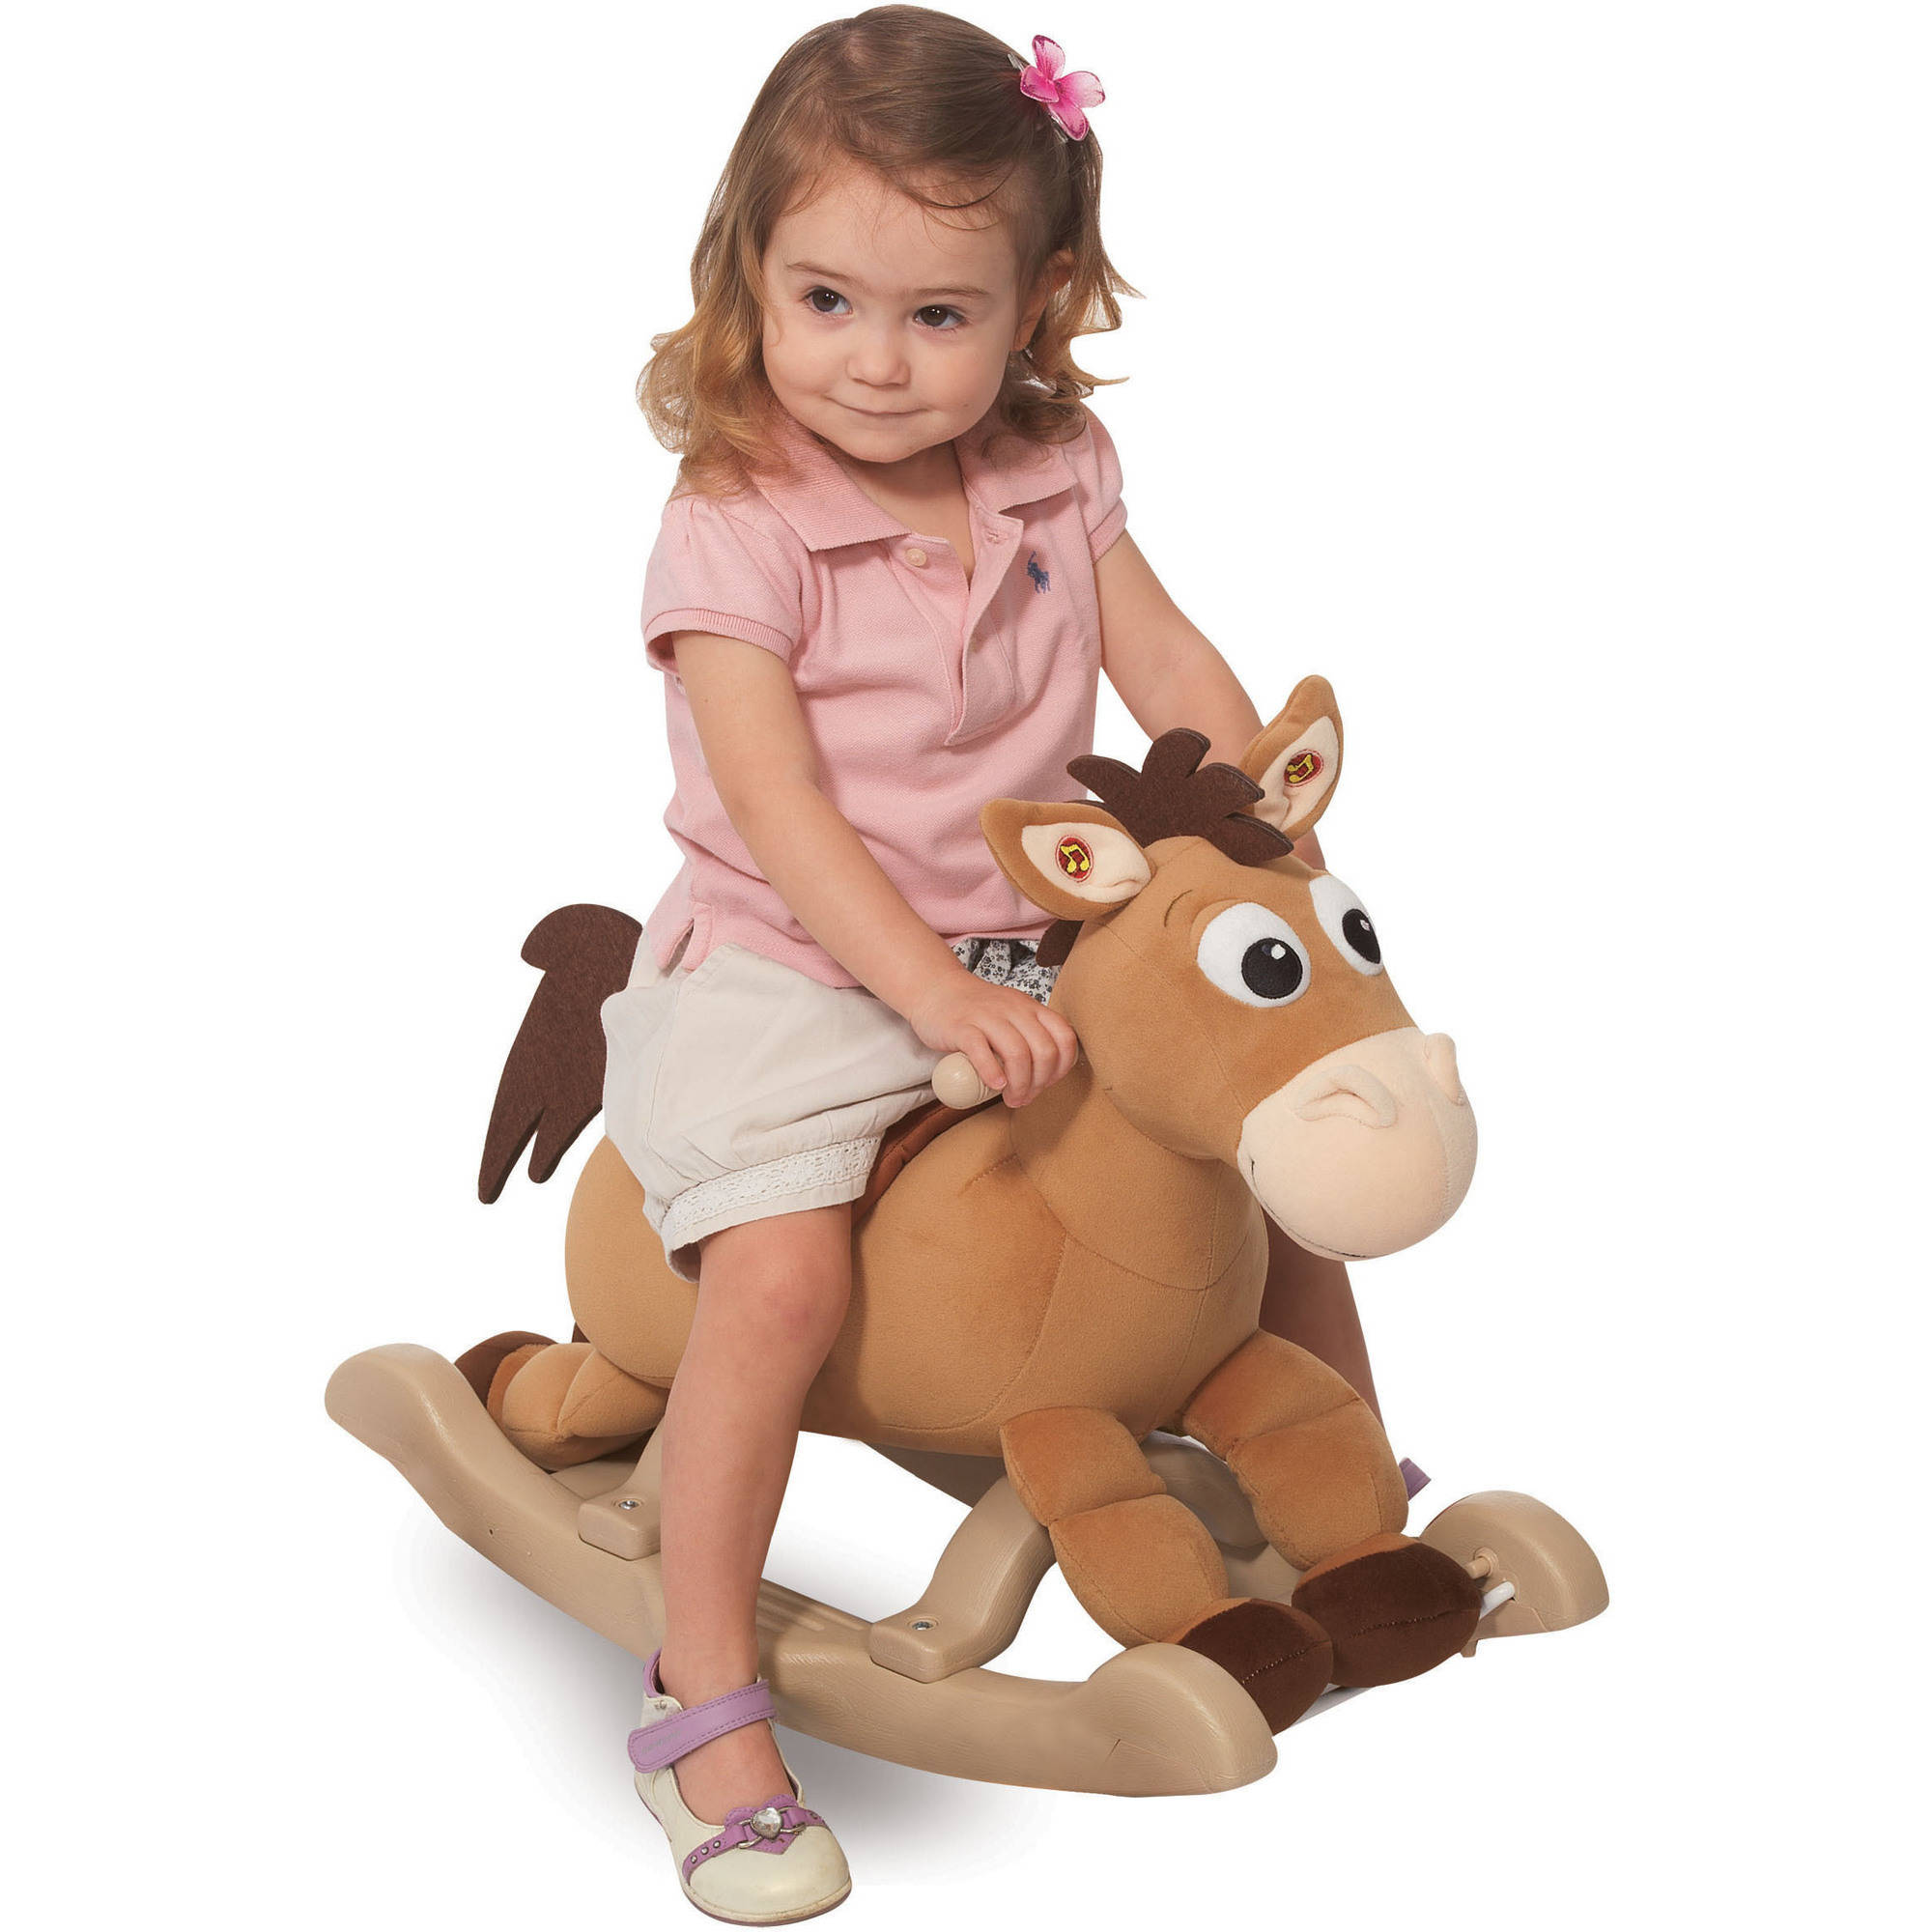 Kiddieland Disney Toy Story Bullseye Rocker